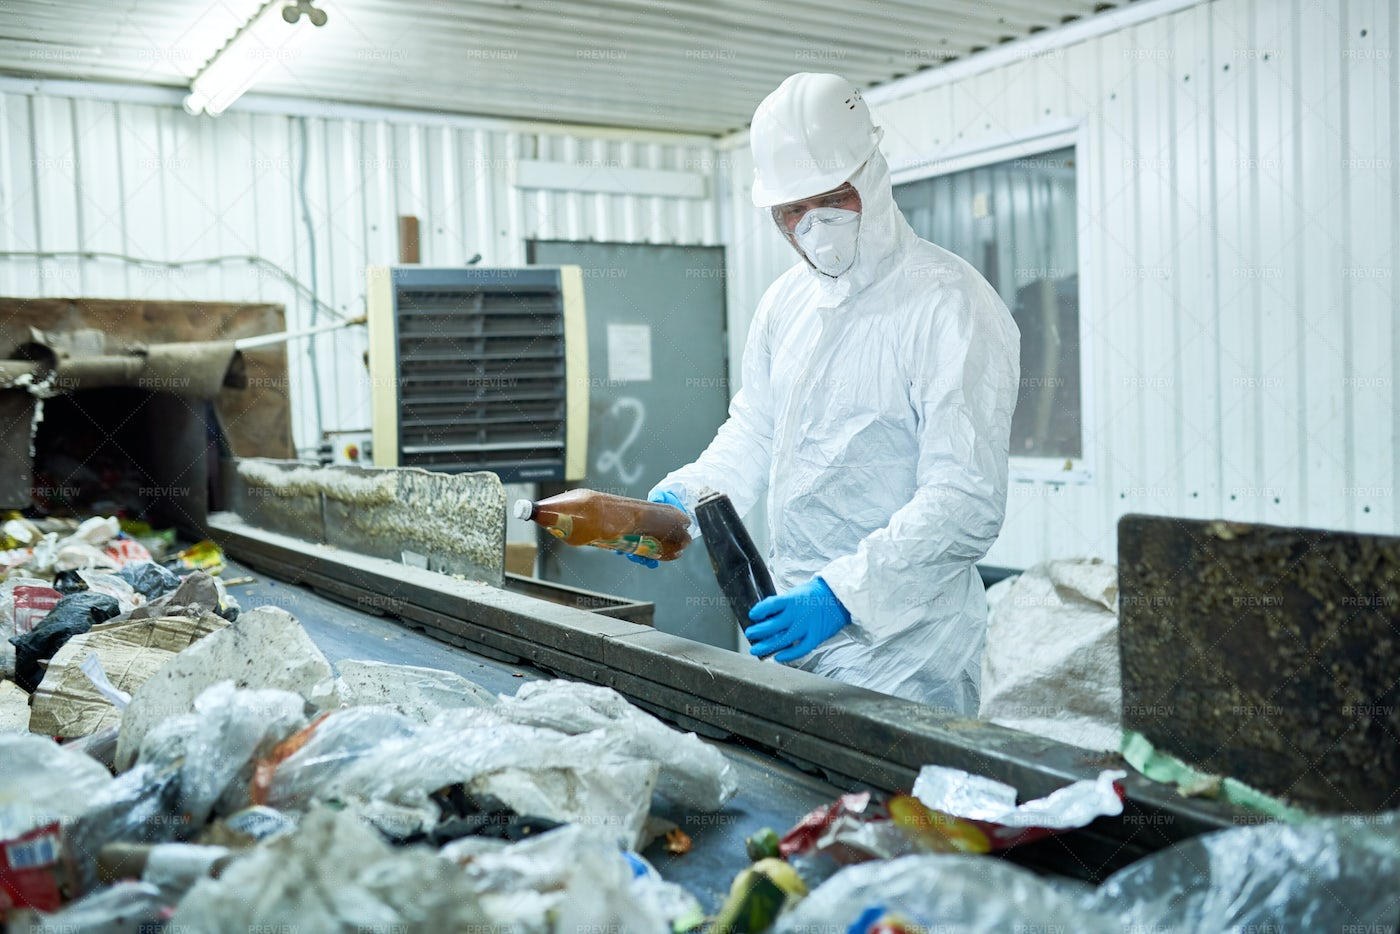 Worker Sorting Trash On Waste...: Stock Photos